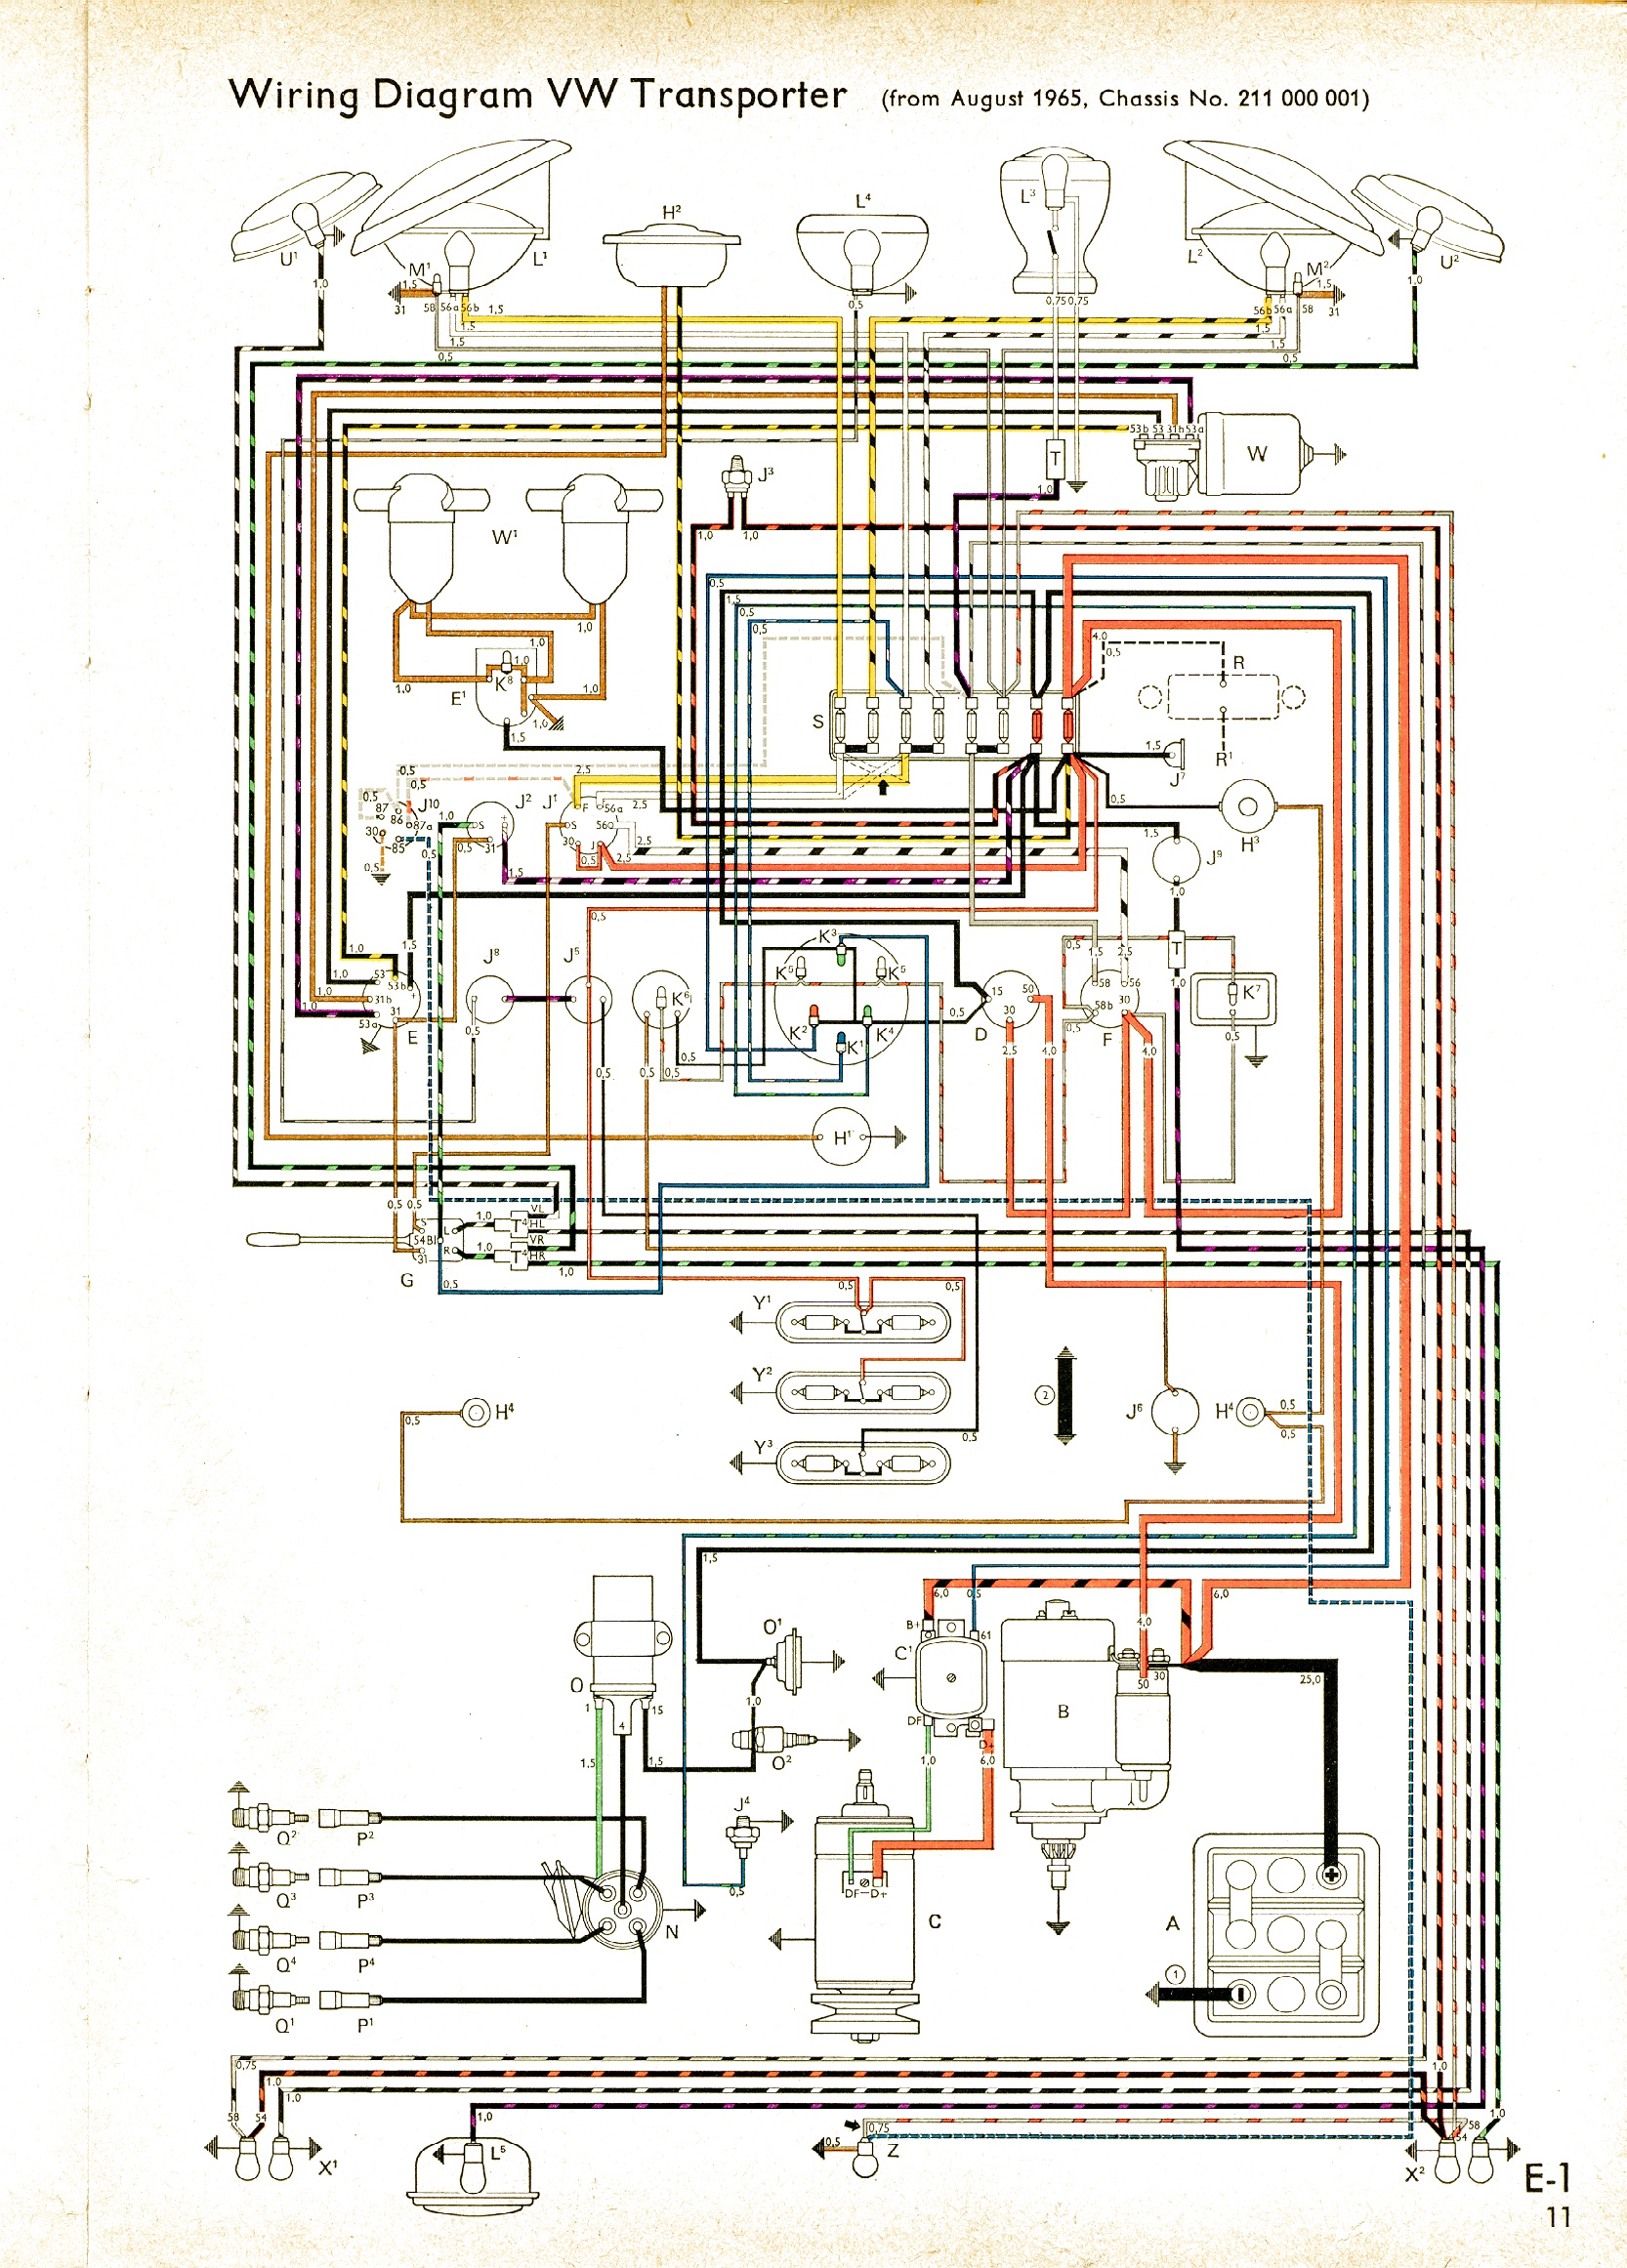 bus 65 bus wiring diagram vw wiring harness diagram \u2022 wiring diagrams j  at mifinder.co